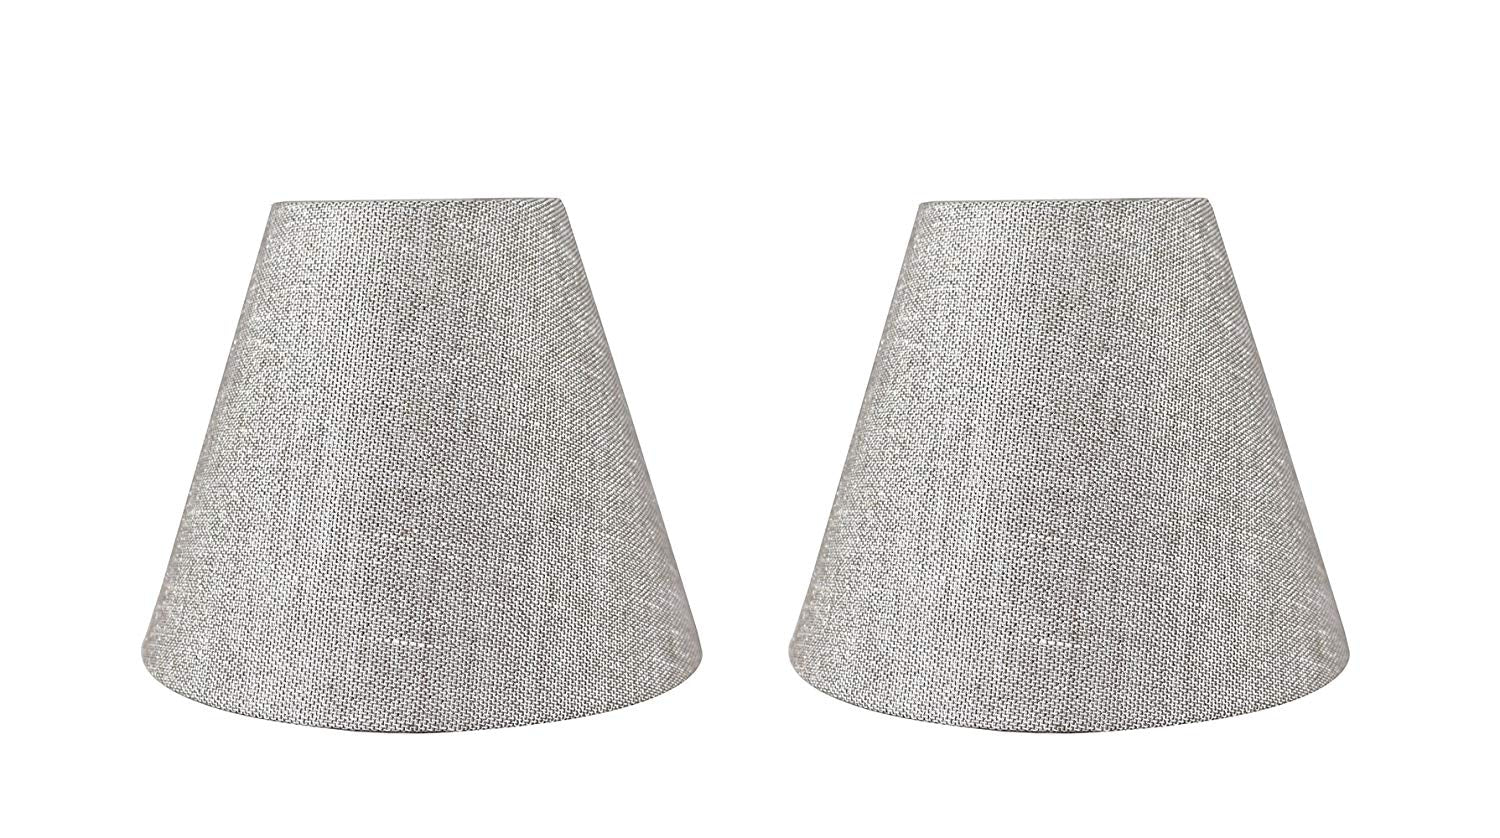 Urbanest hardback metallic fabric chandelier lamp shade 3 inch by 6 urbanest hardback metallic fabric chandelier lamp shade 3 inch by 6 inch by aloadofball Image collections